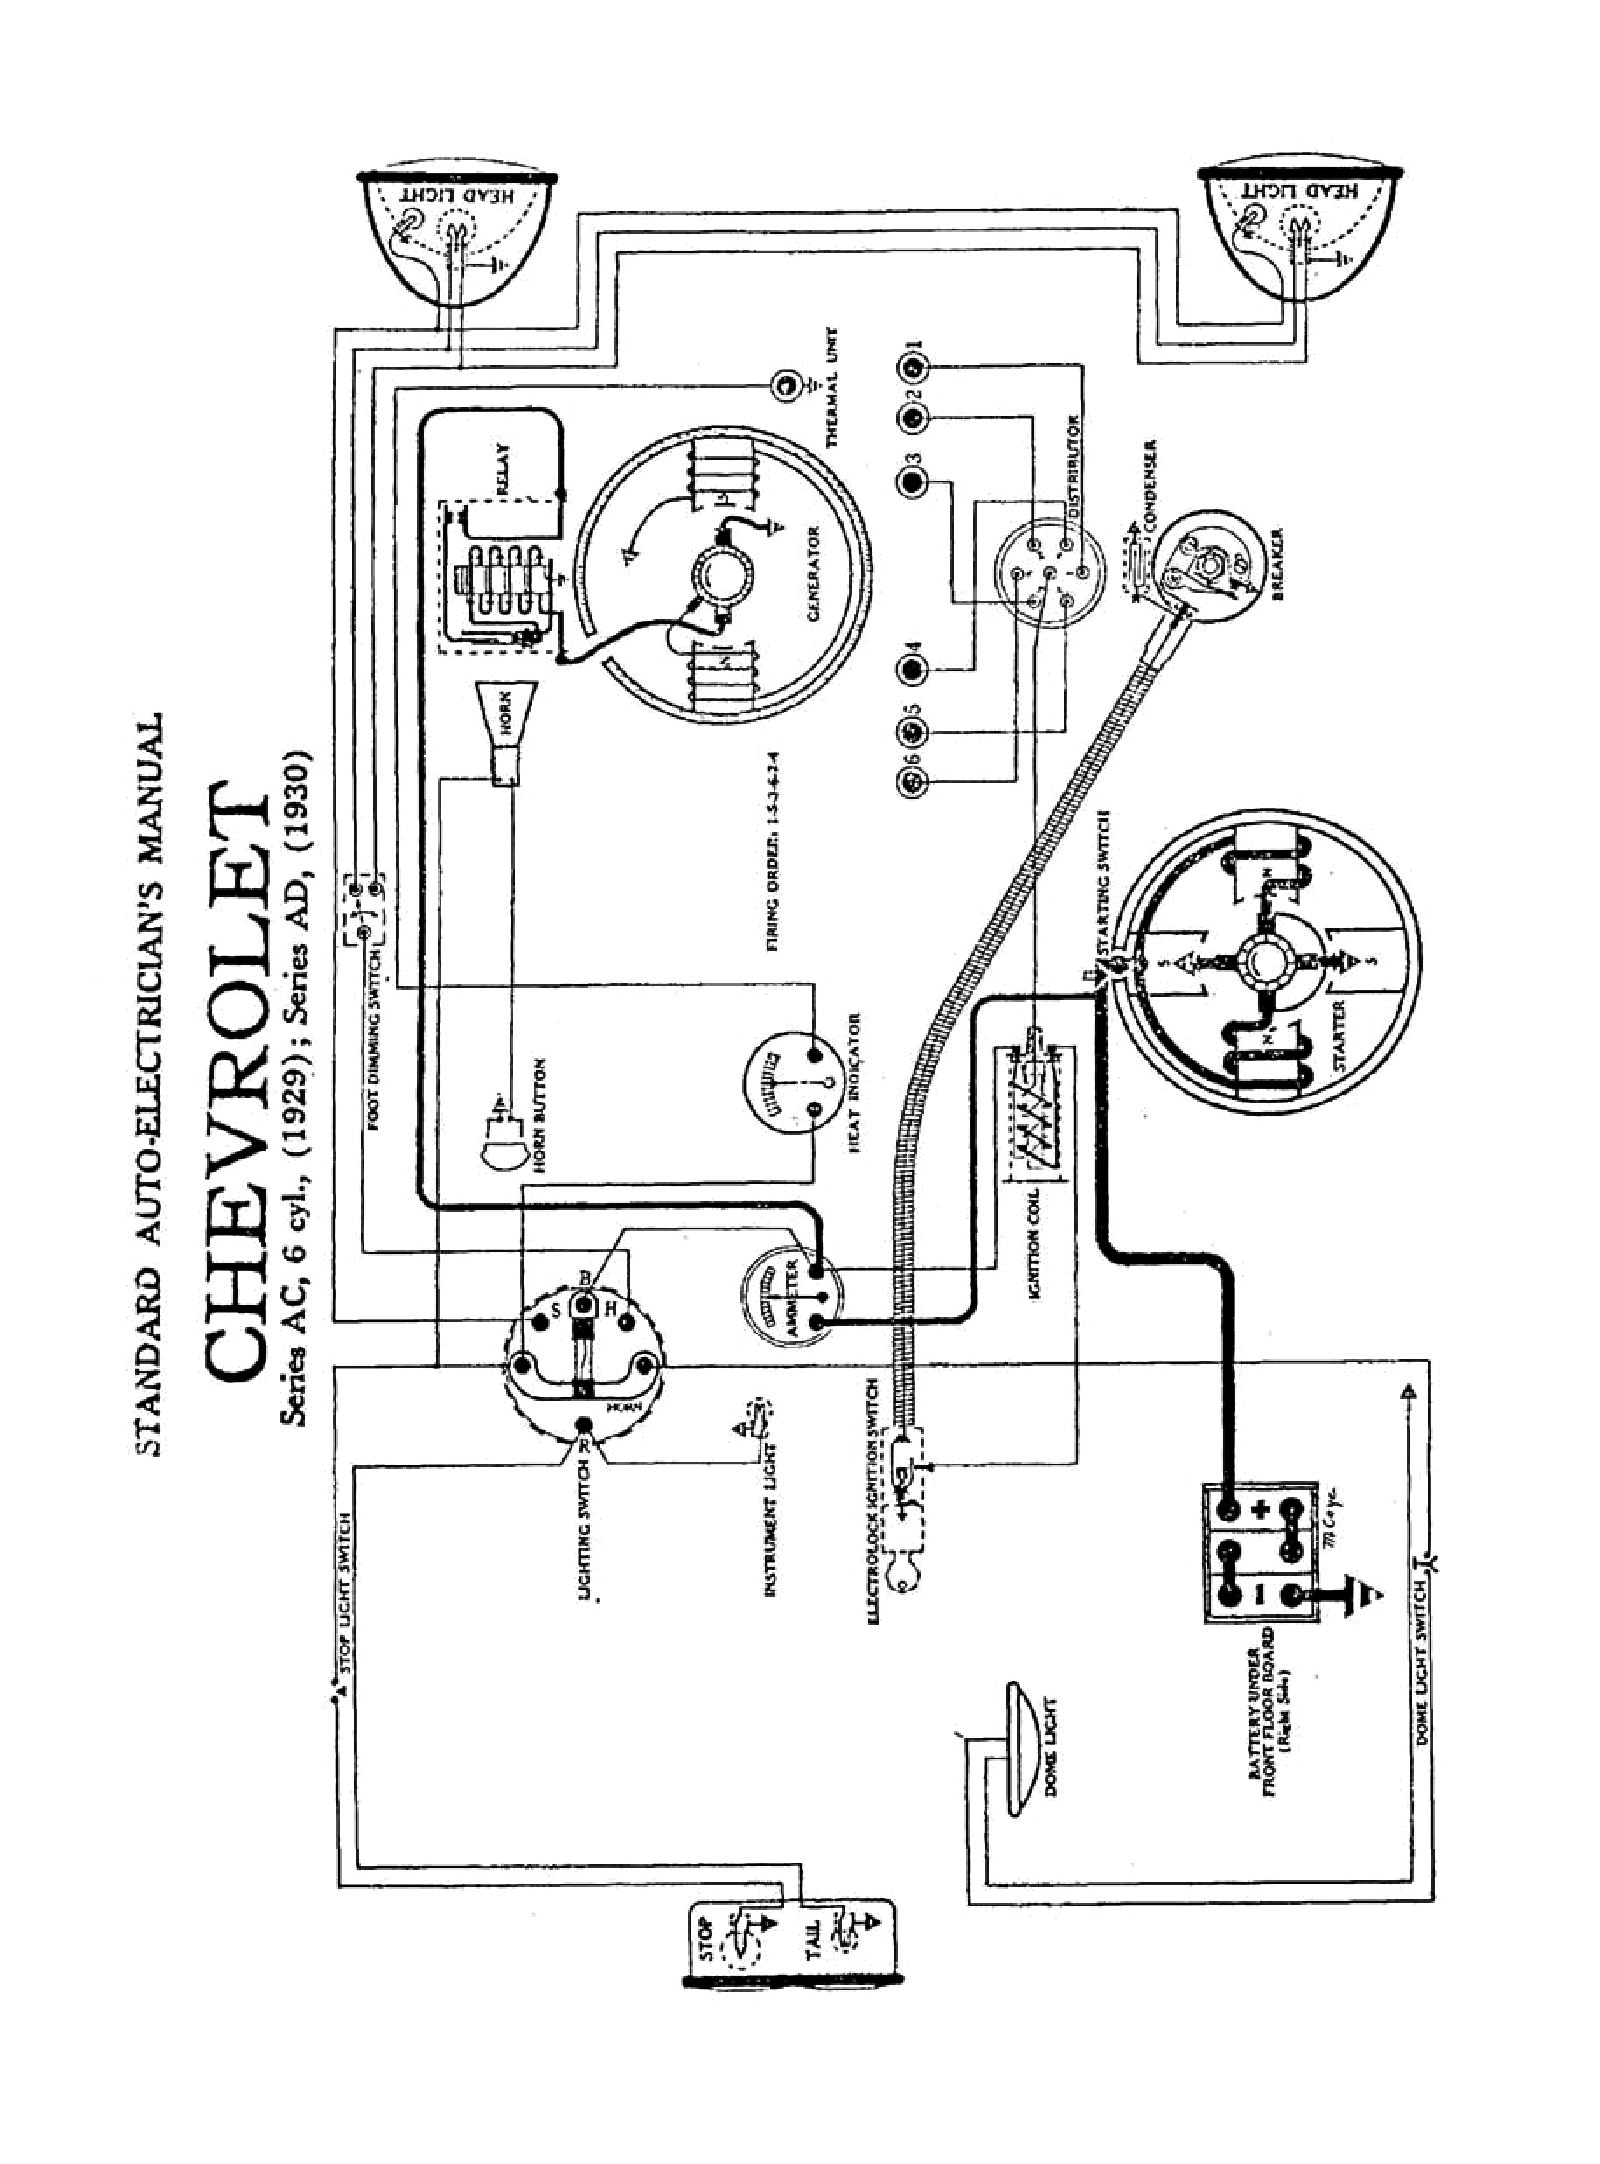 online wiring diagrams 2000 ford f650